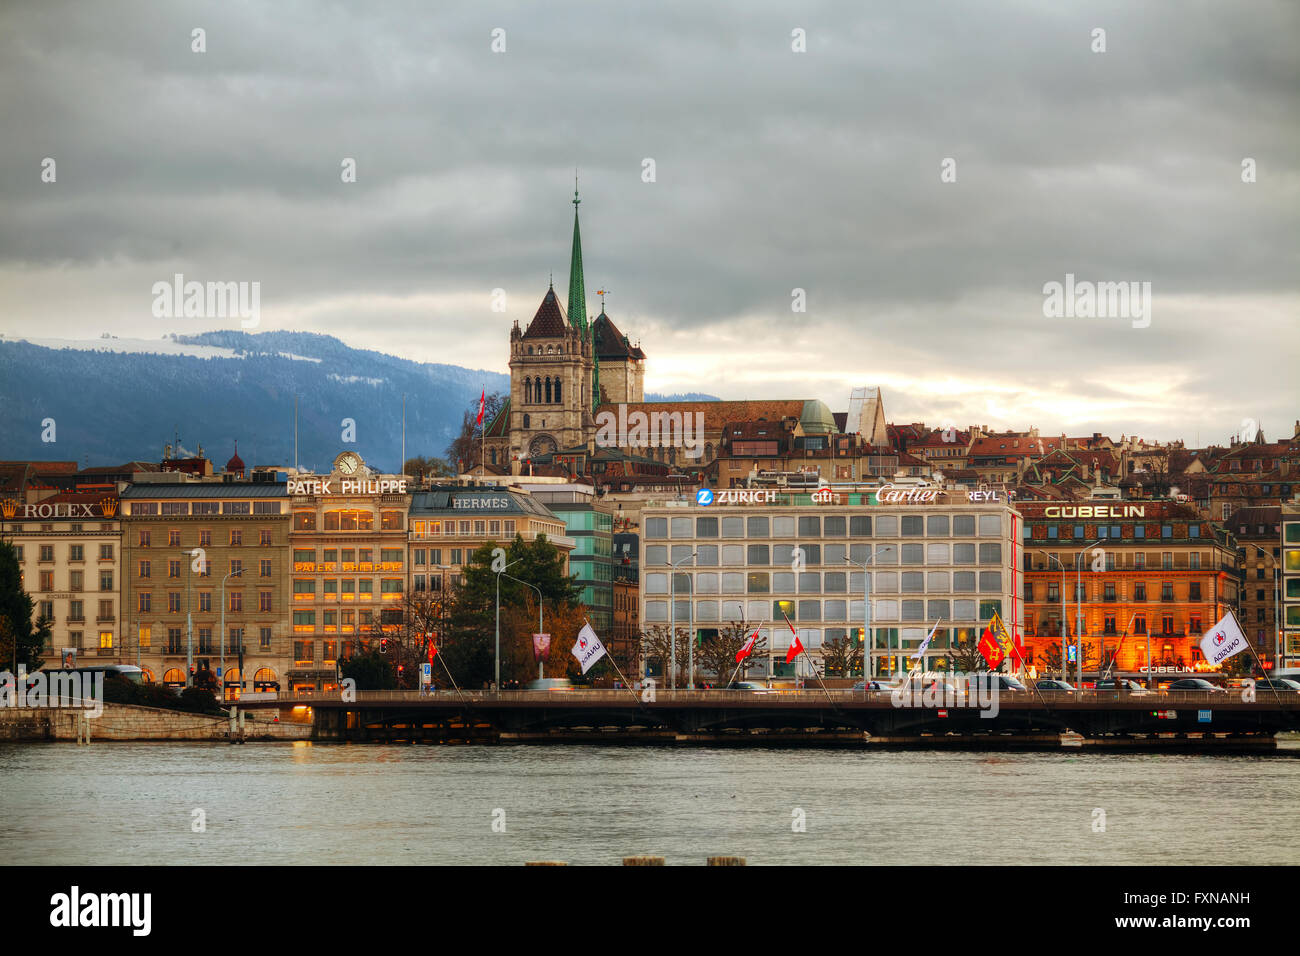 GENEVA, SWITZERLAND - NOVEMBER 28: Geneva cityscape overview with St Pierre Cathedral on November 28, 2015 in Geneva - Stock Image